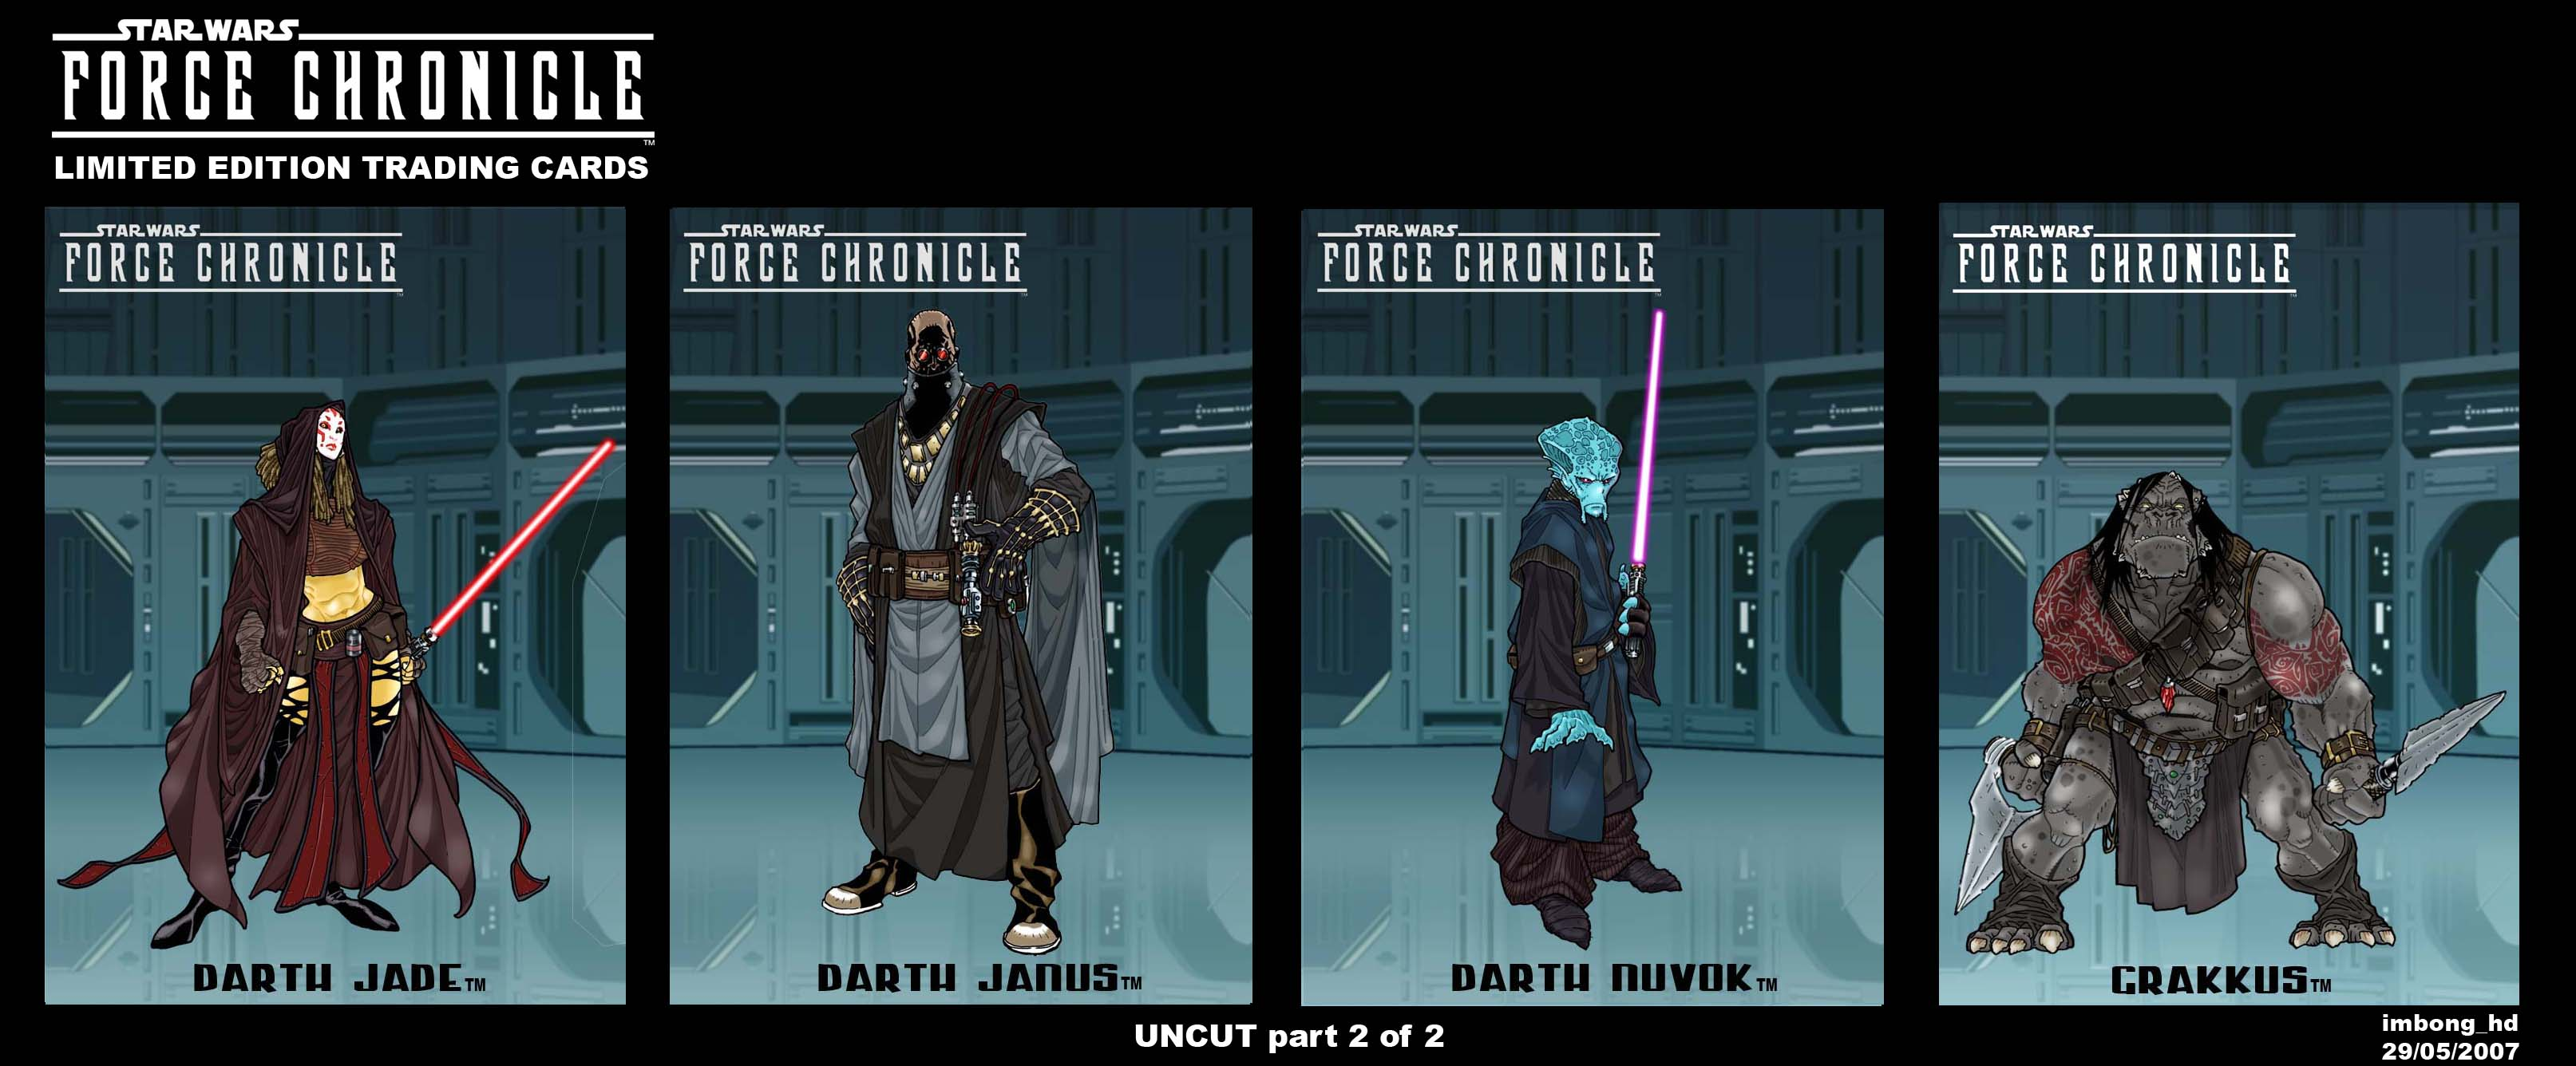 Force Chronicle : SITH part 2